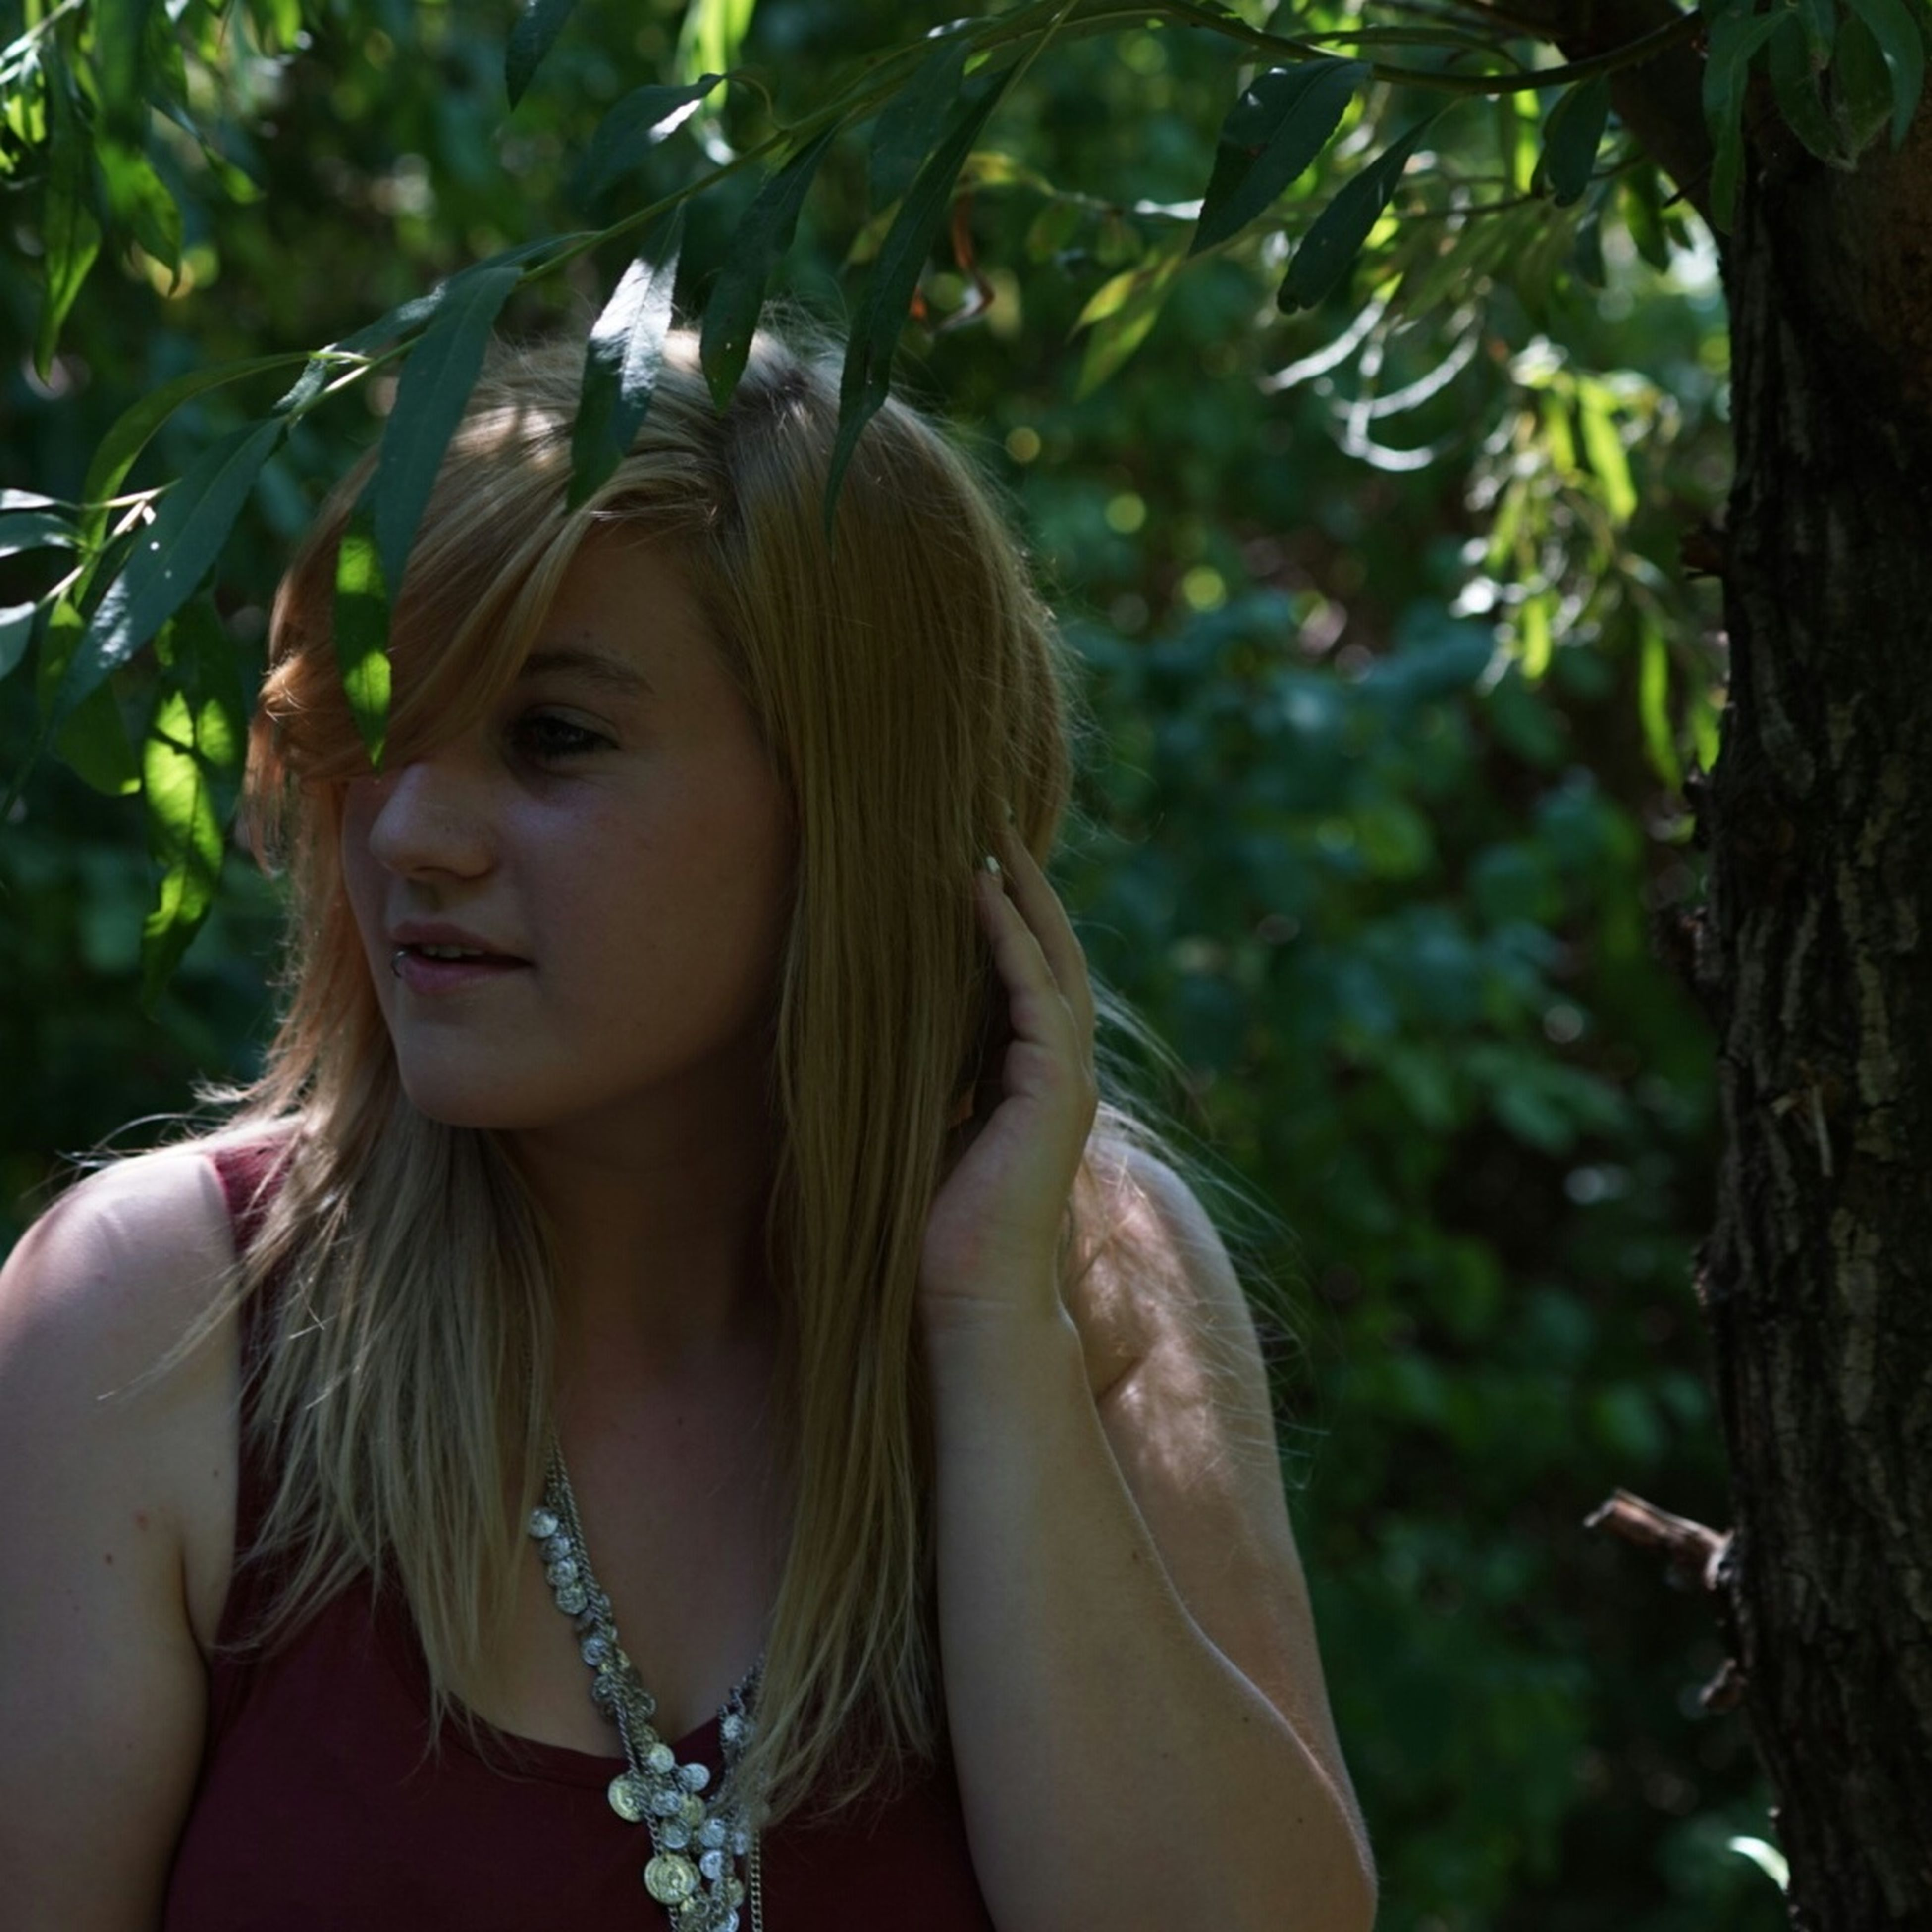 young adult, young women, focus on foreground, lifestyles, person, tree, long hair, leisure activity, headshot, portrait, front view, looking at camera, casual clothing, smiling, close-up, day, park - man made space